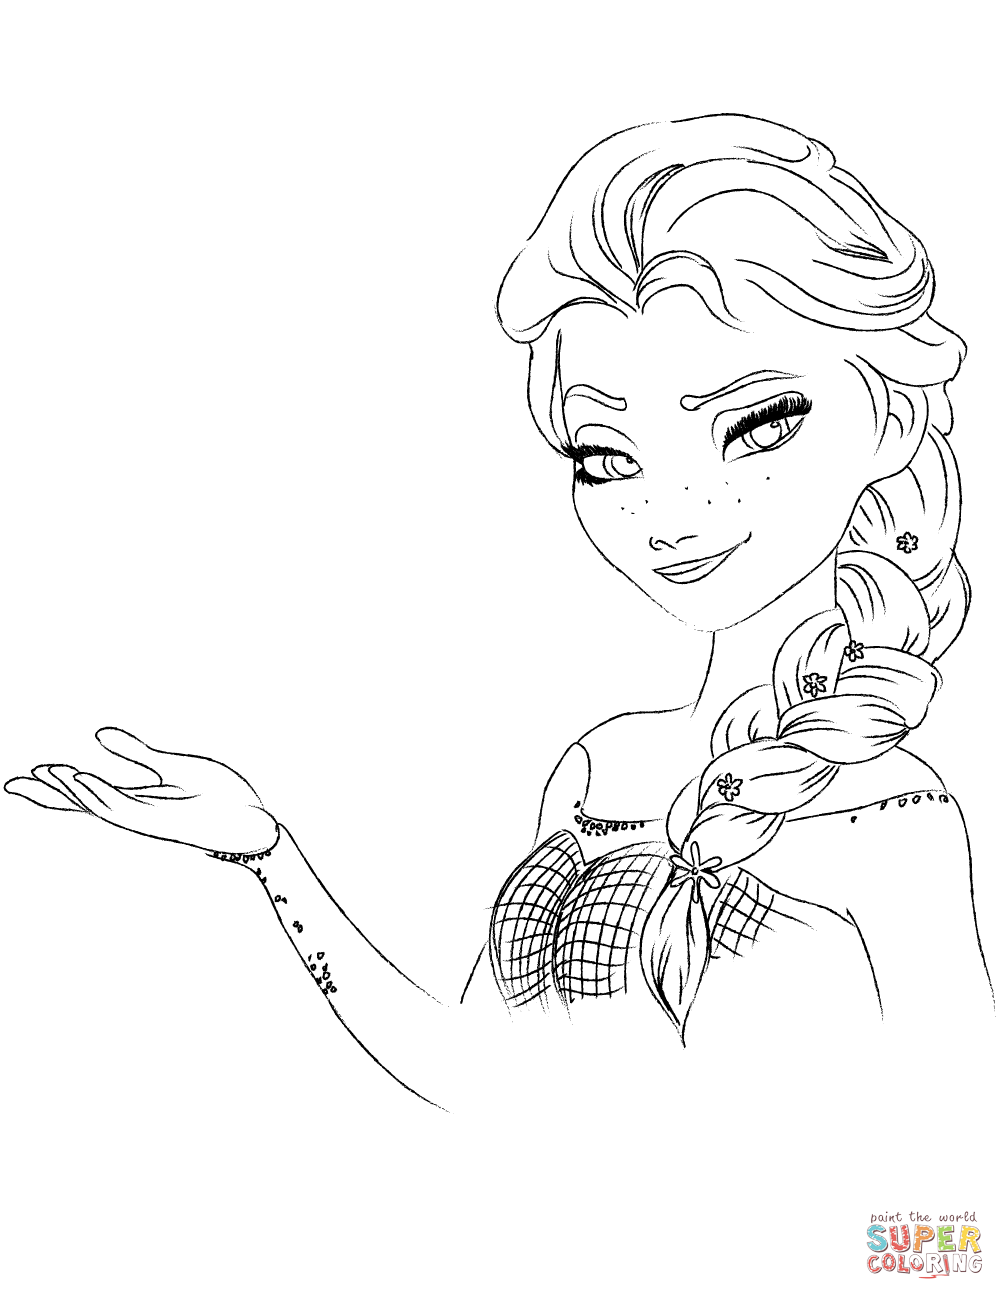 Elsa From The Frozen From The Frozen 1